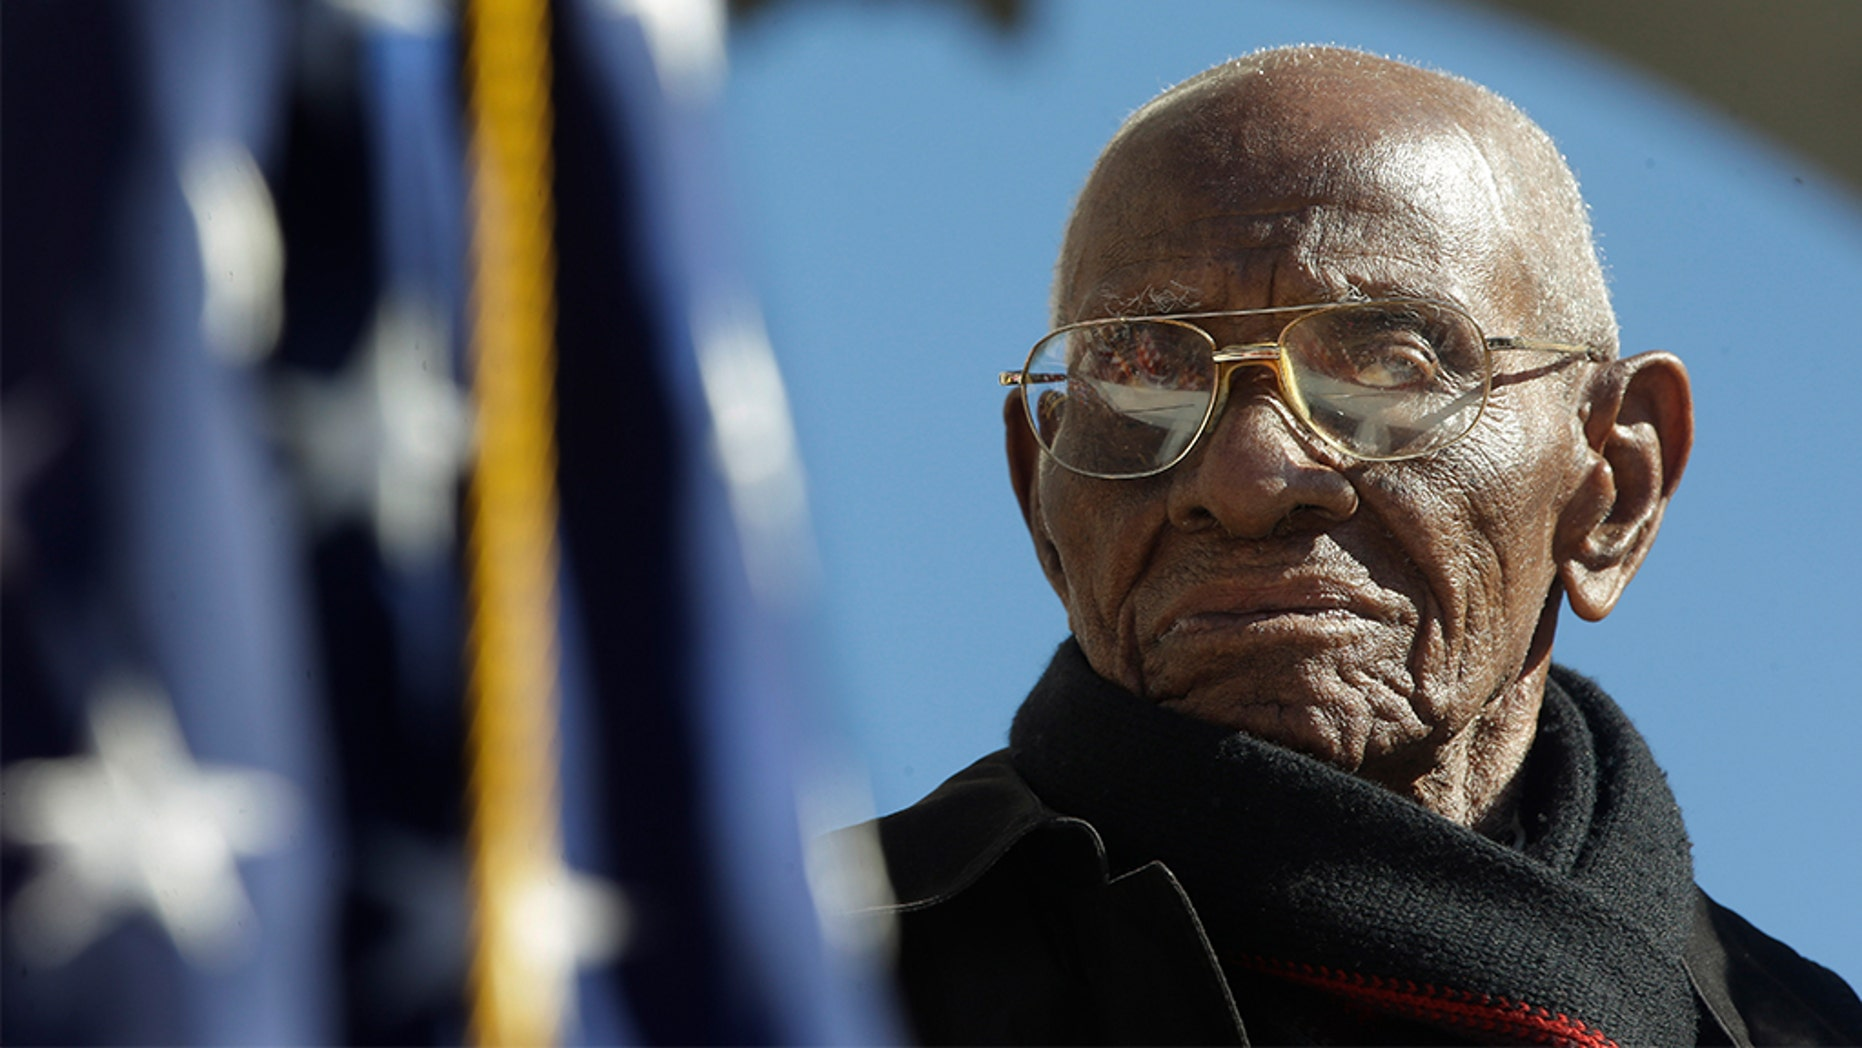 America's oldest veteran, Richard Overton —who served in the Army during World War II and credited God, whiskey and cigars for his longevity —died Thursday in Texas at the age of 112. (AP Photo/Pablo Martinez Monsivais)